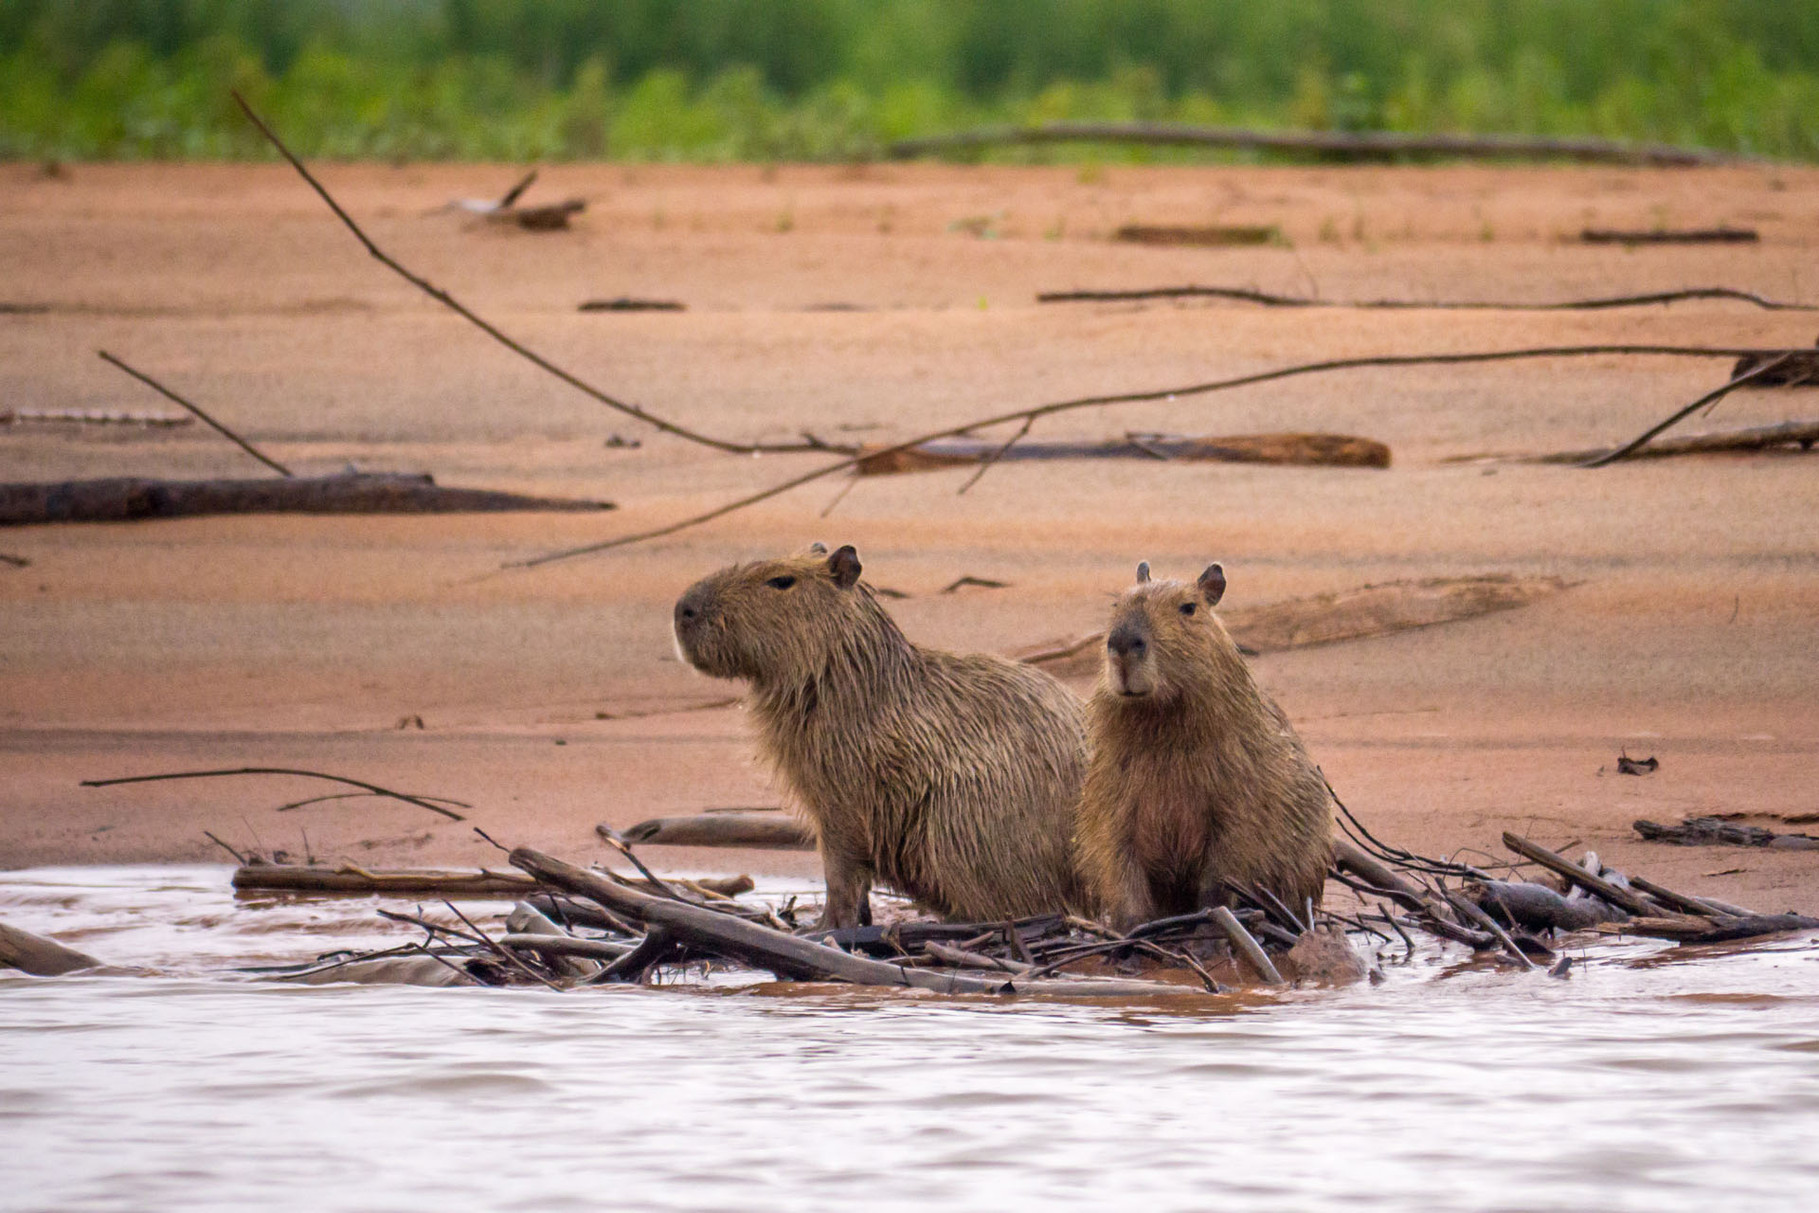 Capybarsas (biggest rodent) at the shore of Rio Tuichi, Madidi Nationalpark